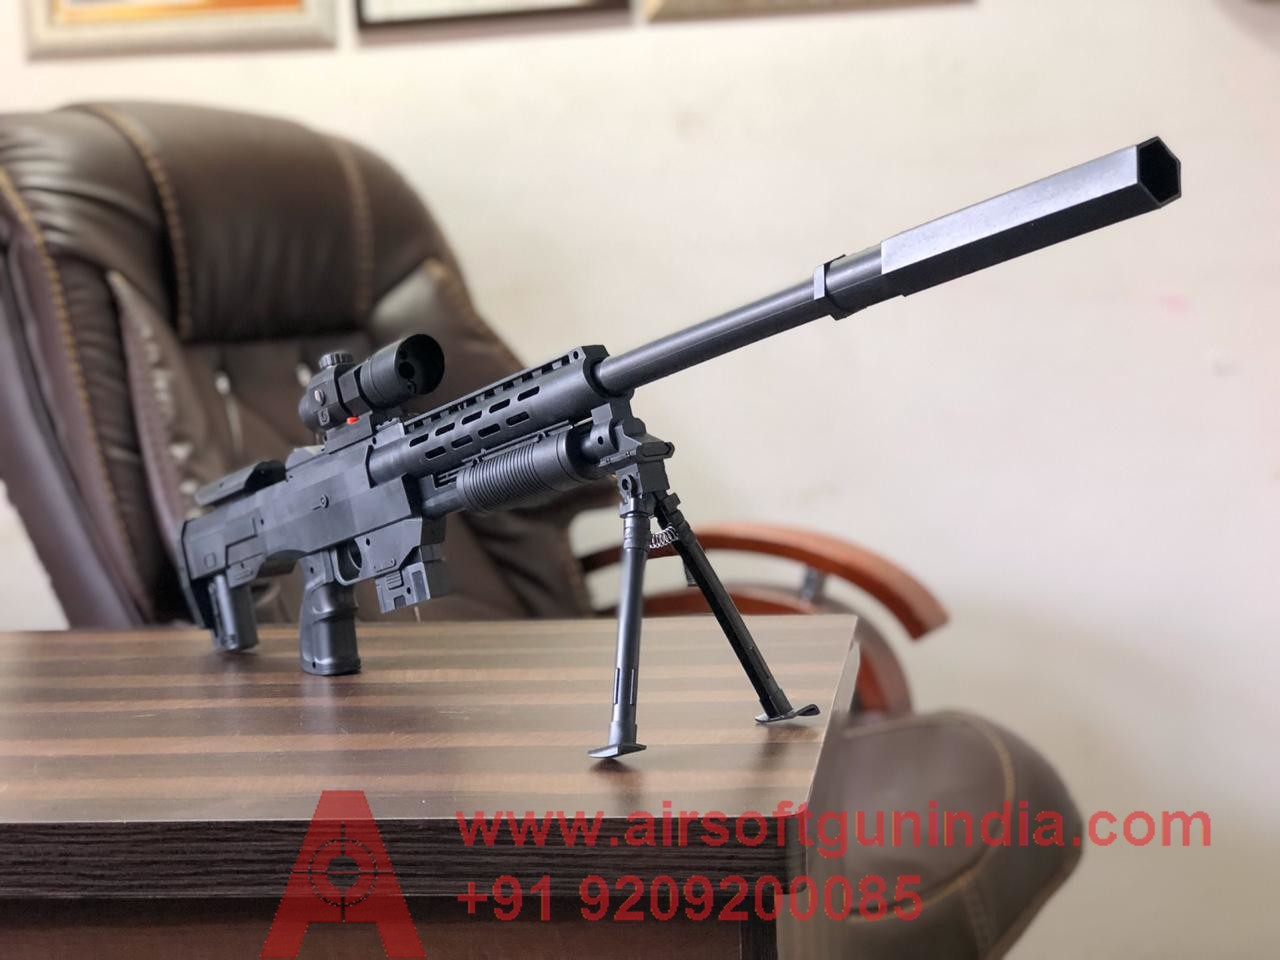 TS12 Airsoft Sniper Rifle By Airsoft Gun India